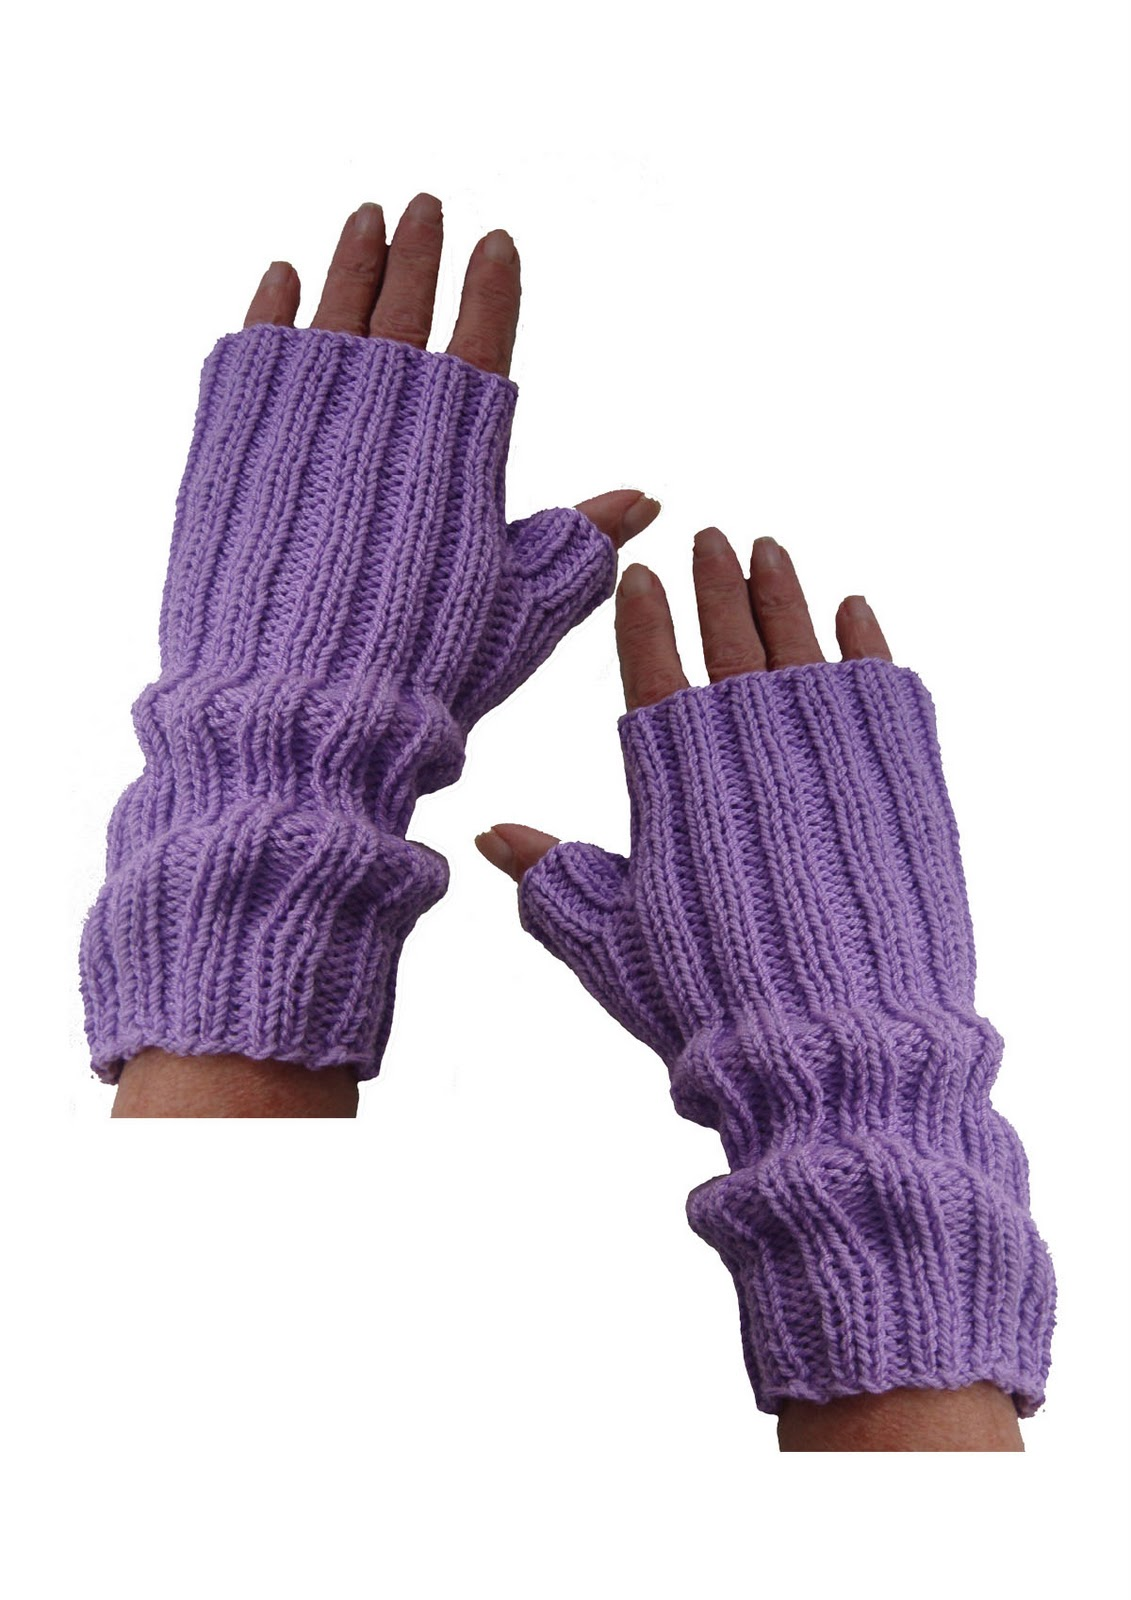 Fingerless Gloves and Wrist Warmers -- Free Crochet Patterns